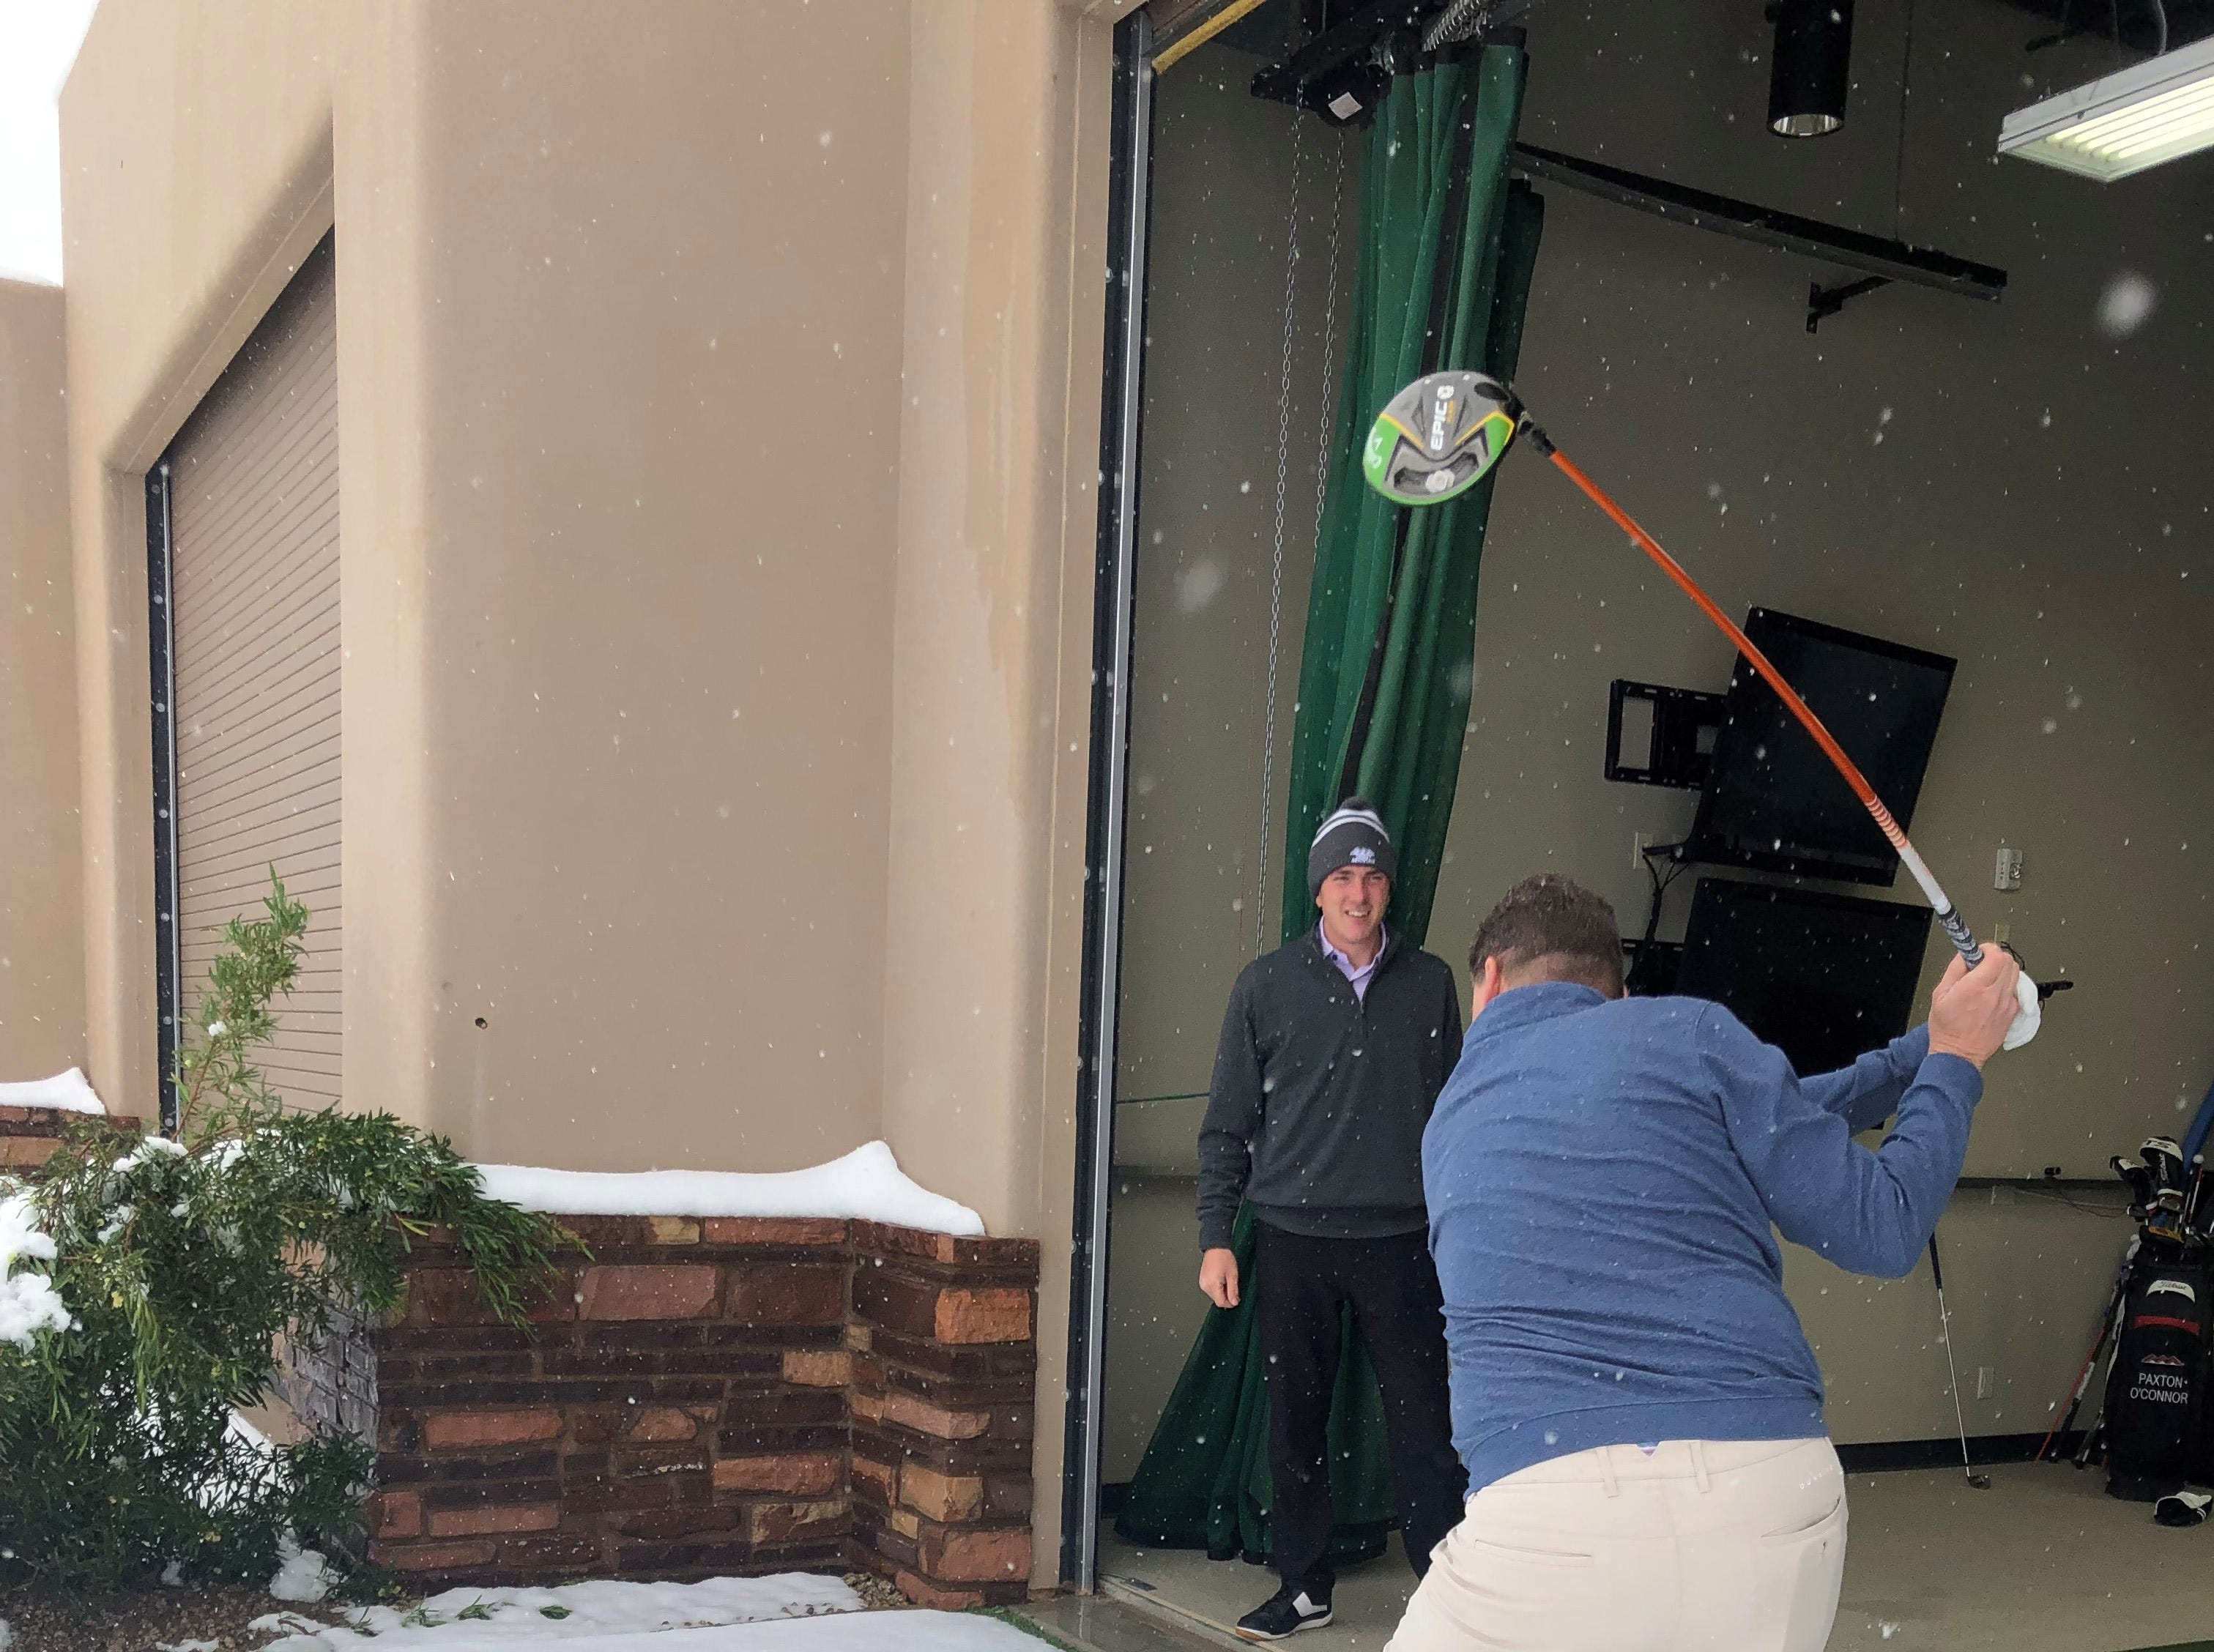 Members and staff play golf in the snow at Jim Flick Golf Performance Center at Desert Mountain Golf Club in Scottsdale.